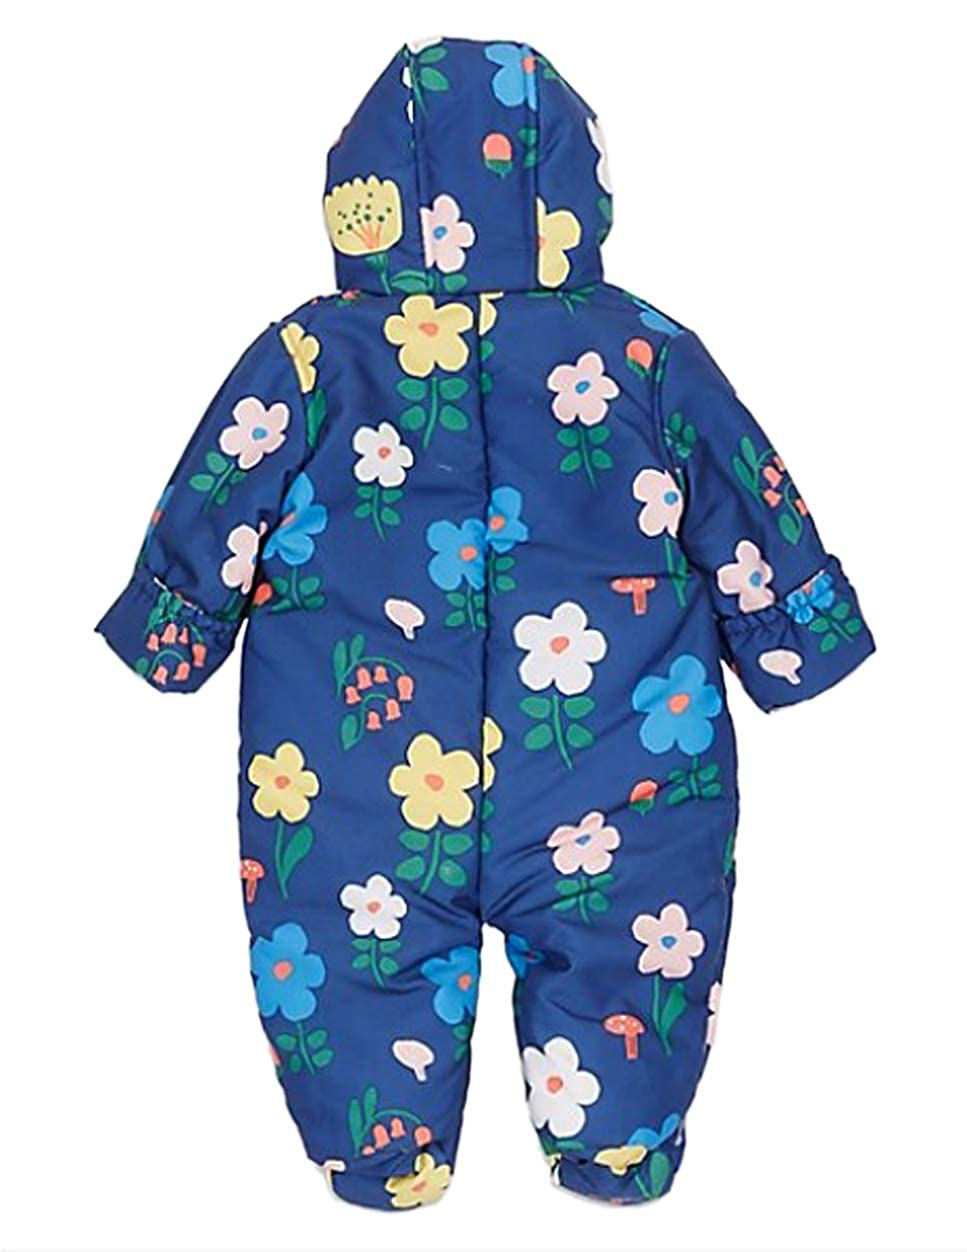 BABY GIRLS SNOWSUIT CREAM FLORAL MARKS /& SPENCER 3 6 9 12 18 MONTHS RRP £22 NEW